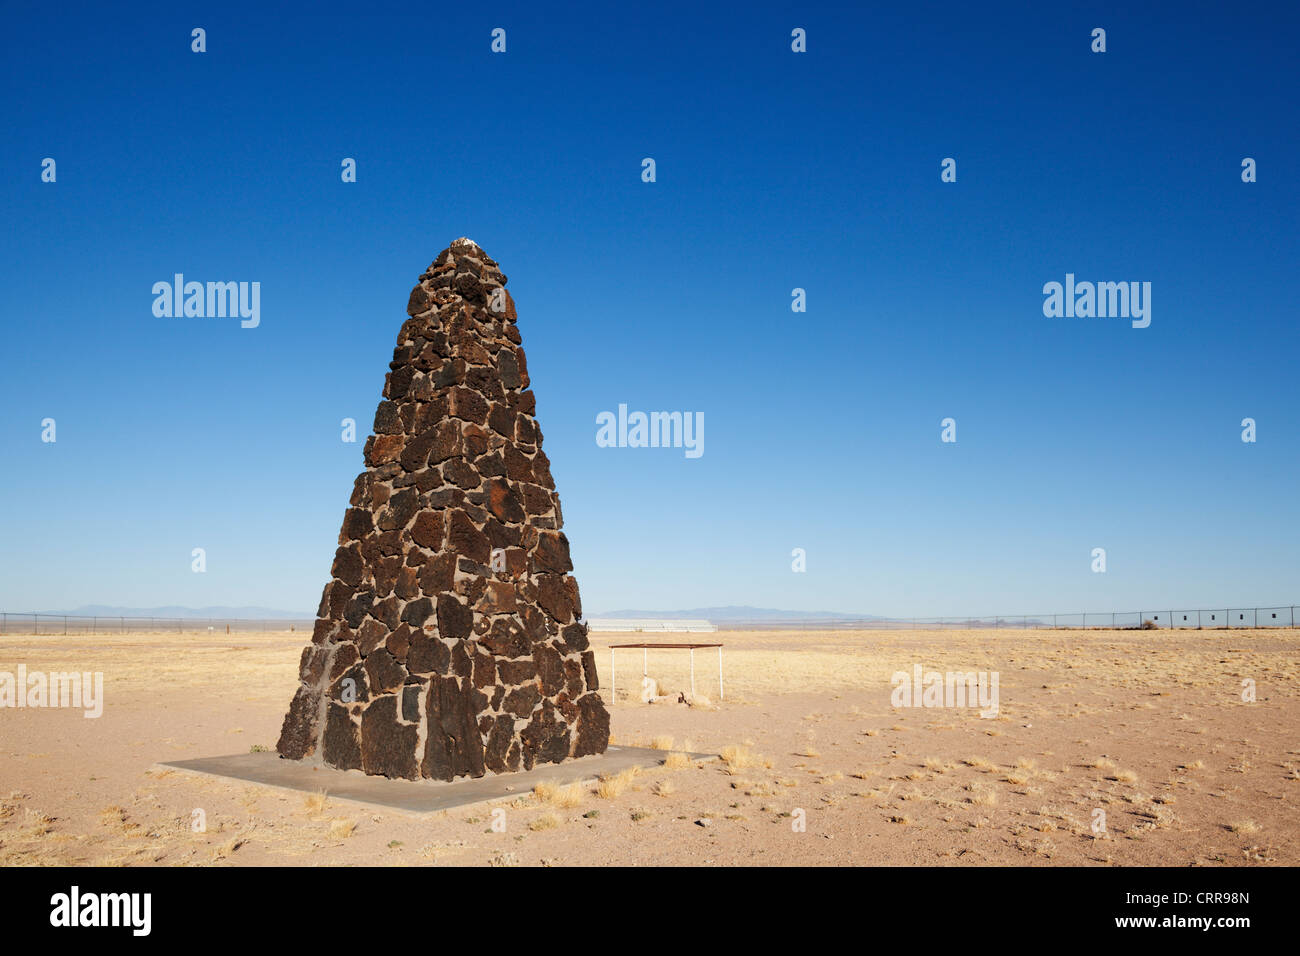 An obelisk in remote New Mexico marks Trinity Site, where the world's first nuclear bomb was tested in 1945. - Stock Image